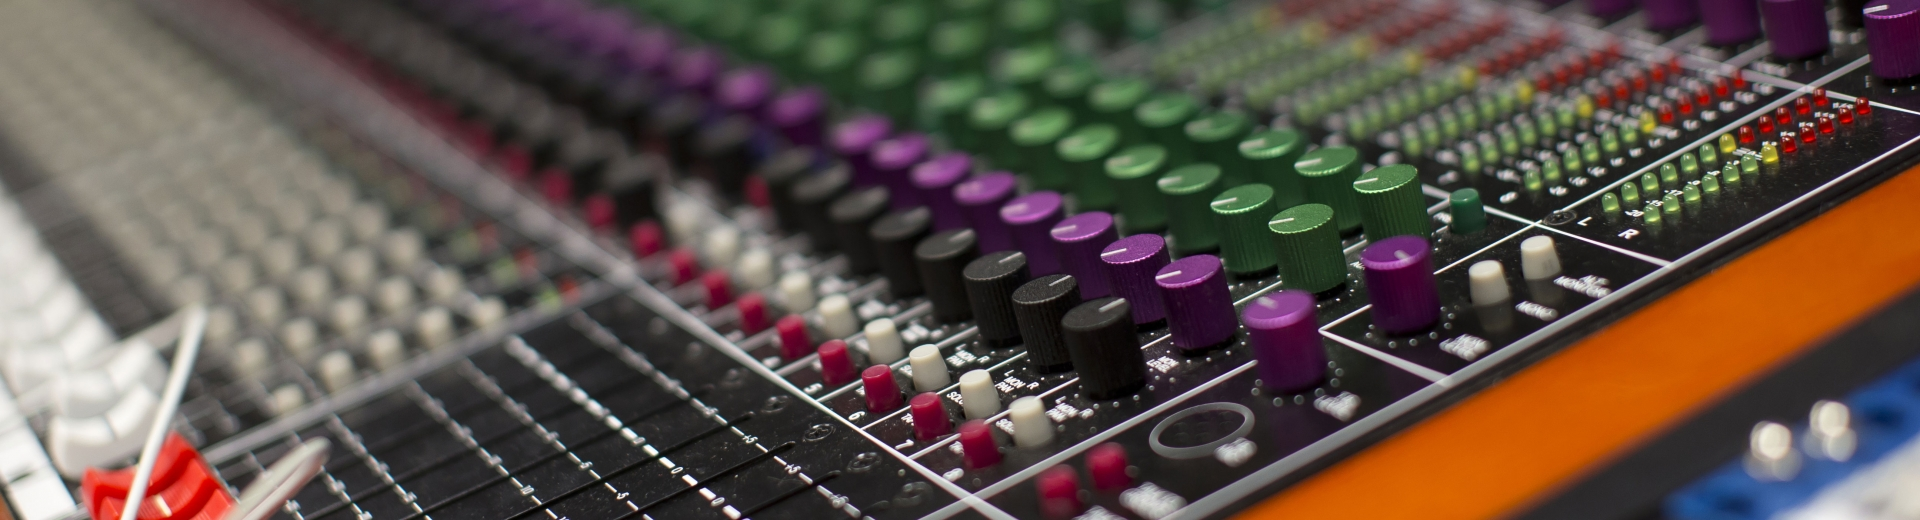 close up of sound board with multiple colored controls and knobs